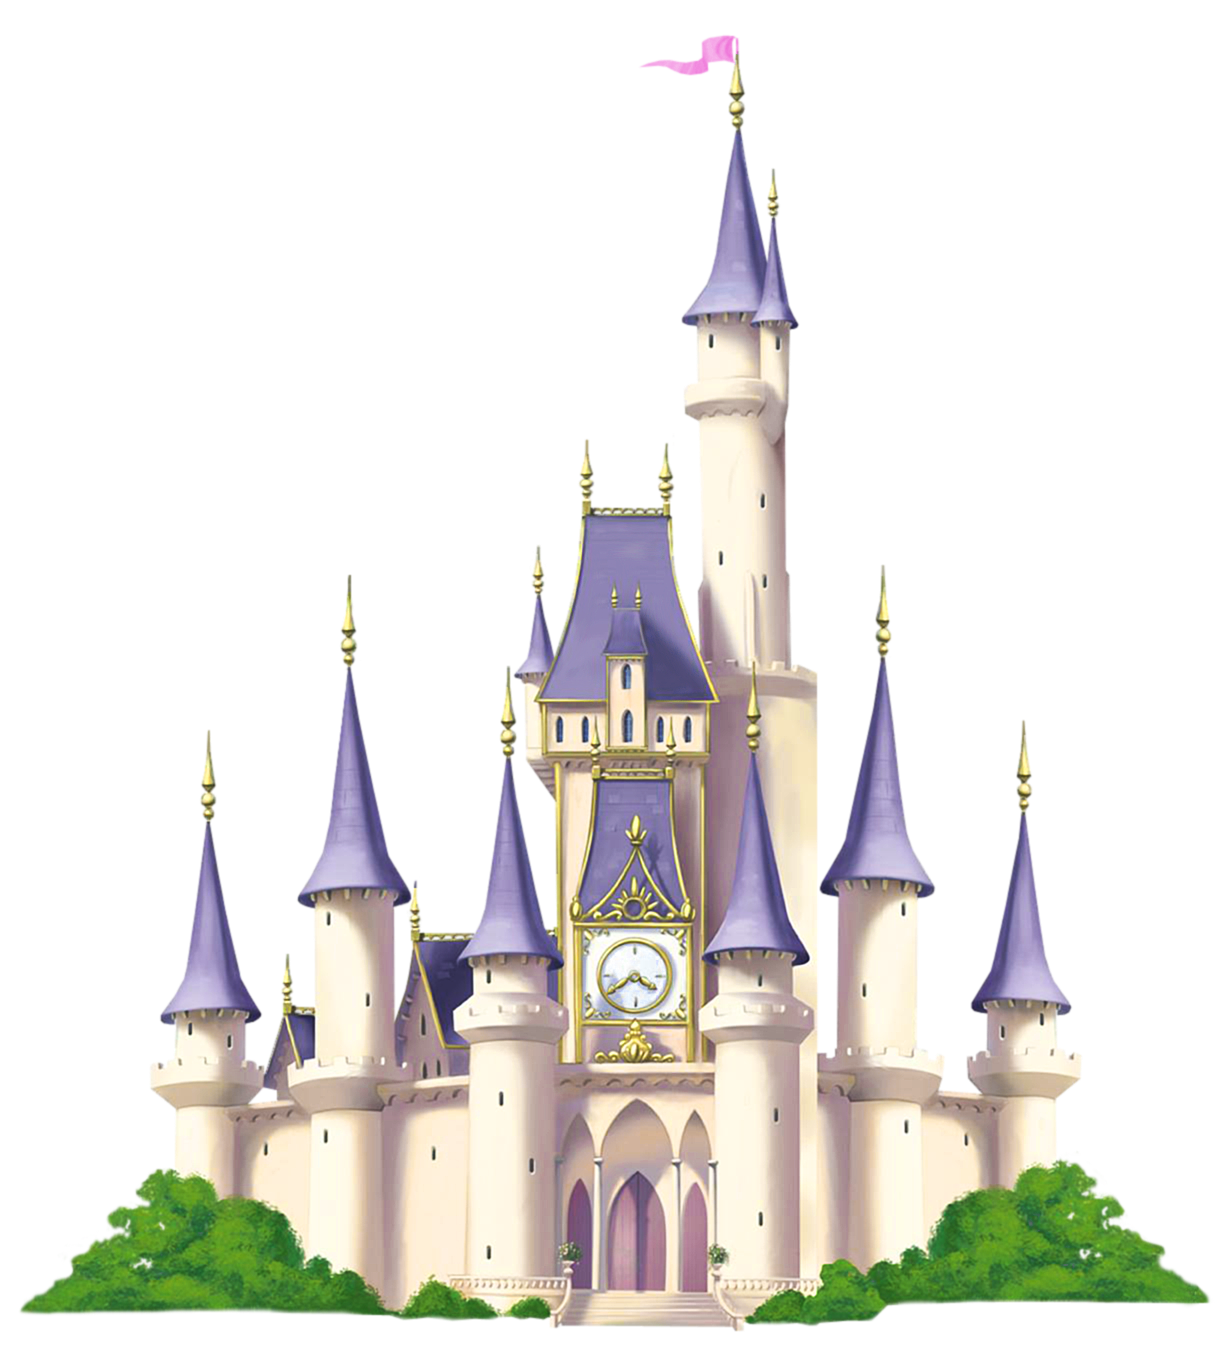 1224x1360 15 Transparent Castle Clipart For Free Download On Mbtskoudsalg